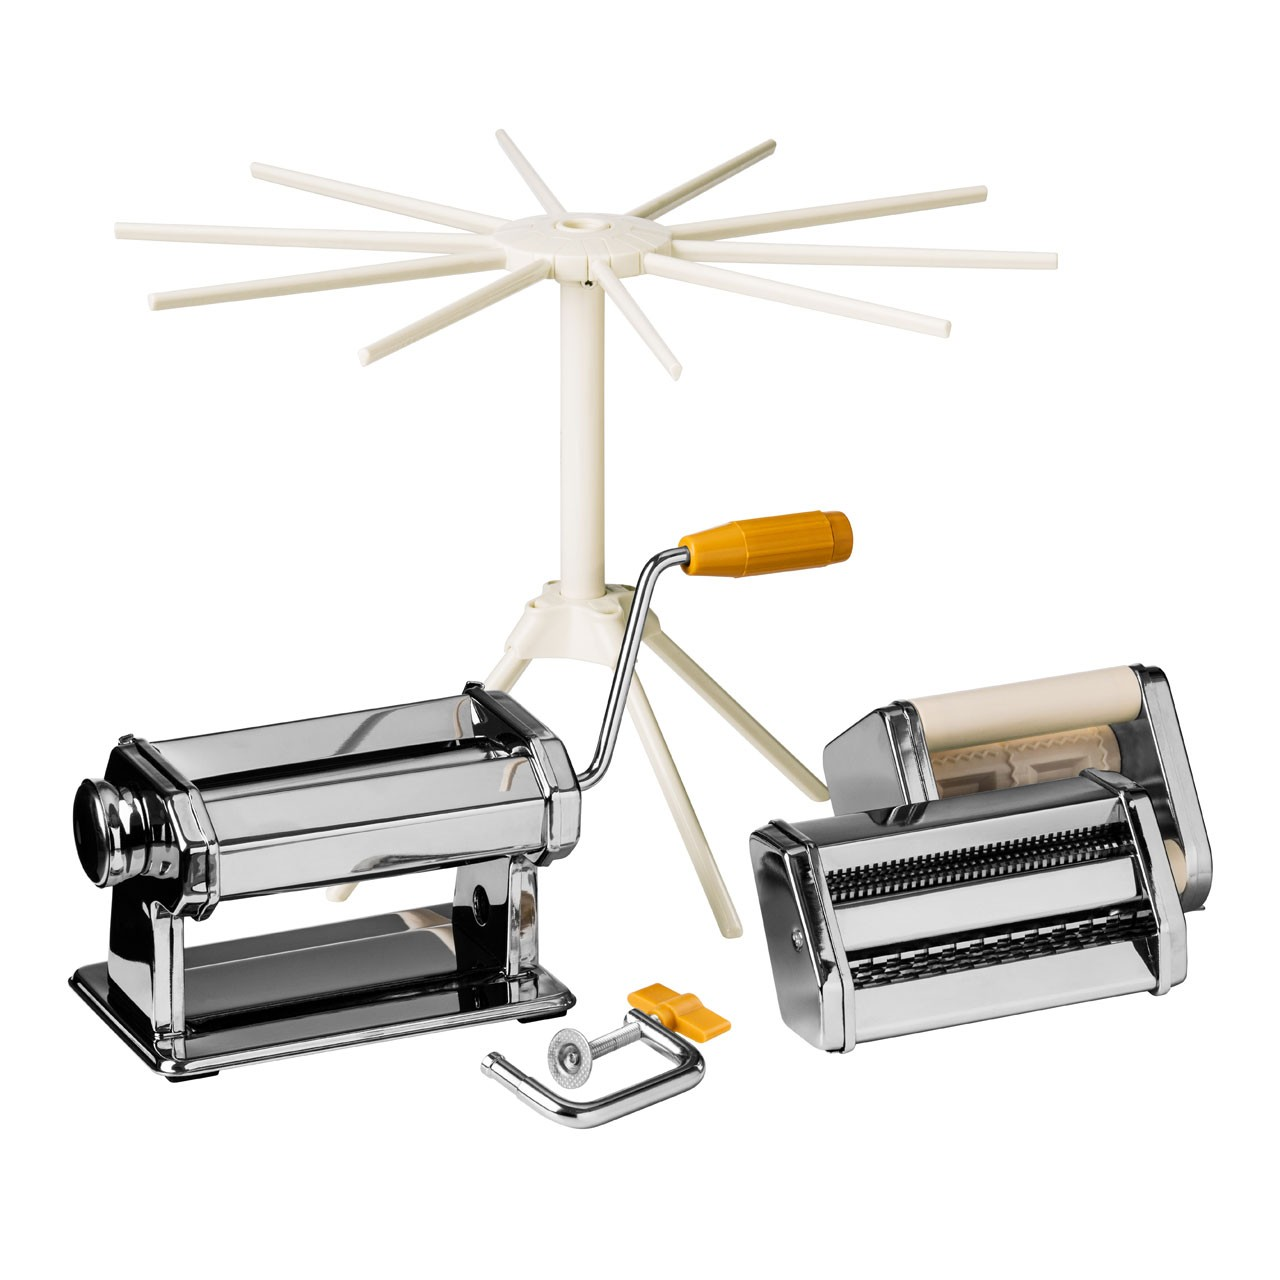 From Scratch Multi Pasta Maker Set - Chrome